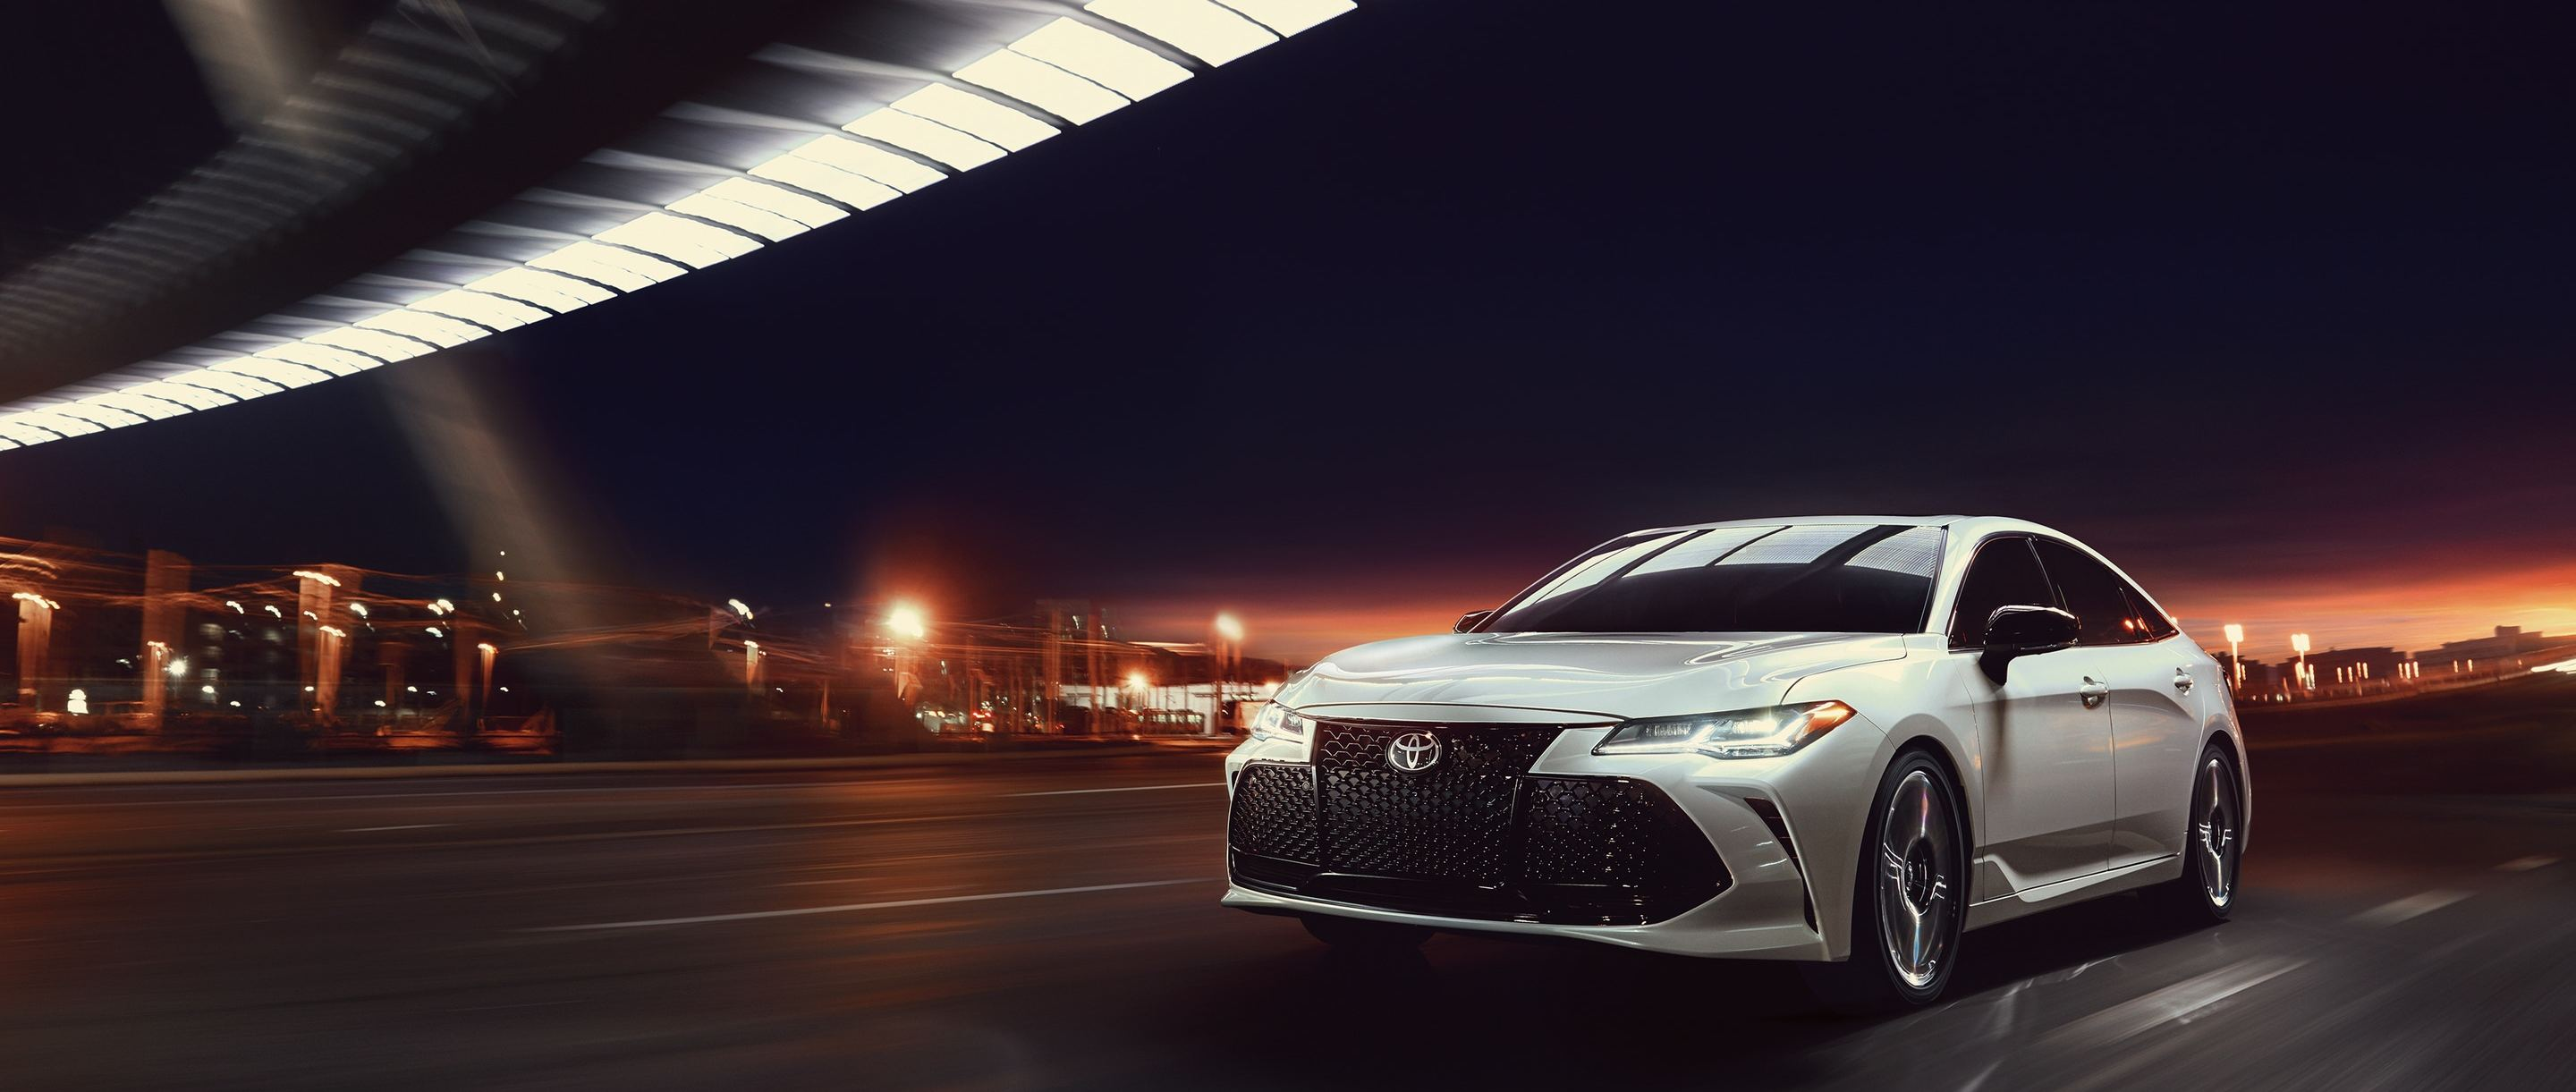 2020 Toyota Avalon Lease near Leawood, KS, 64804